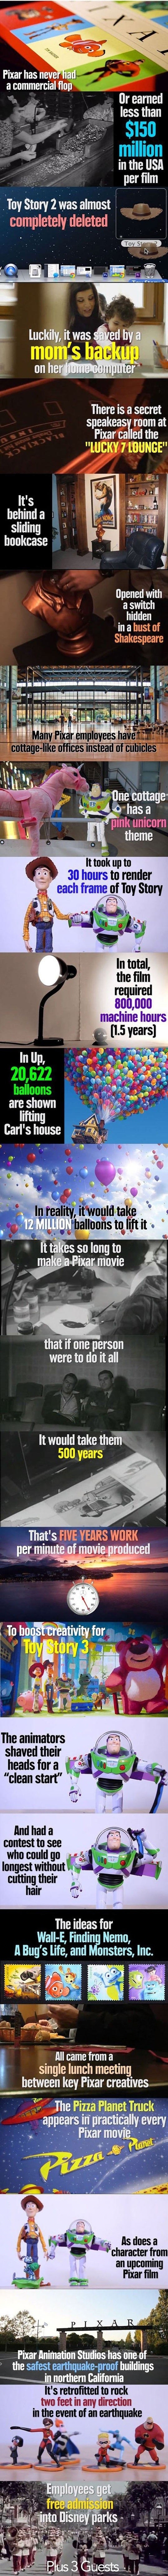 Pixar Facts You Probably Didn't Know